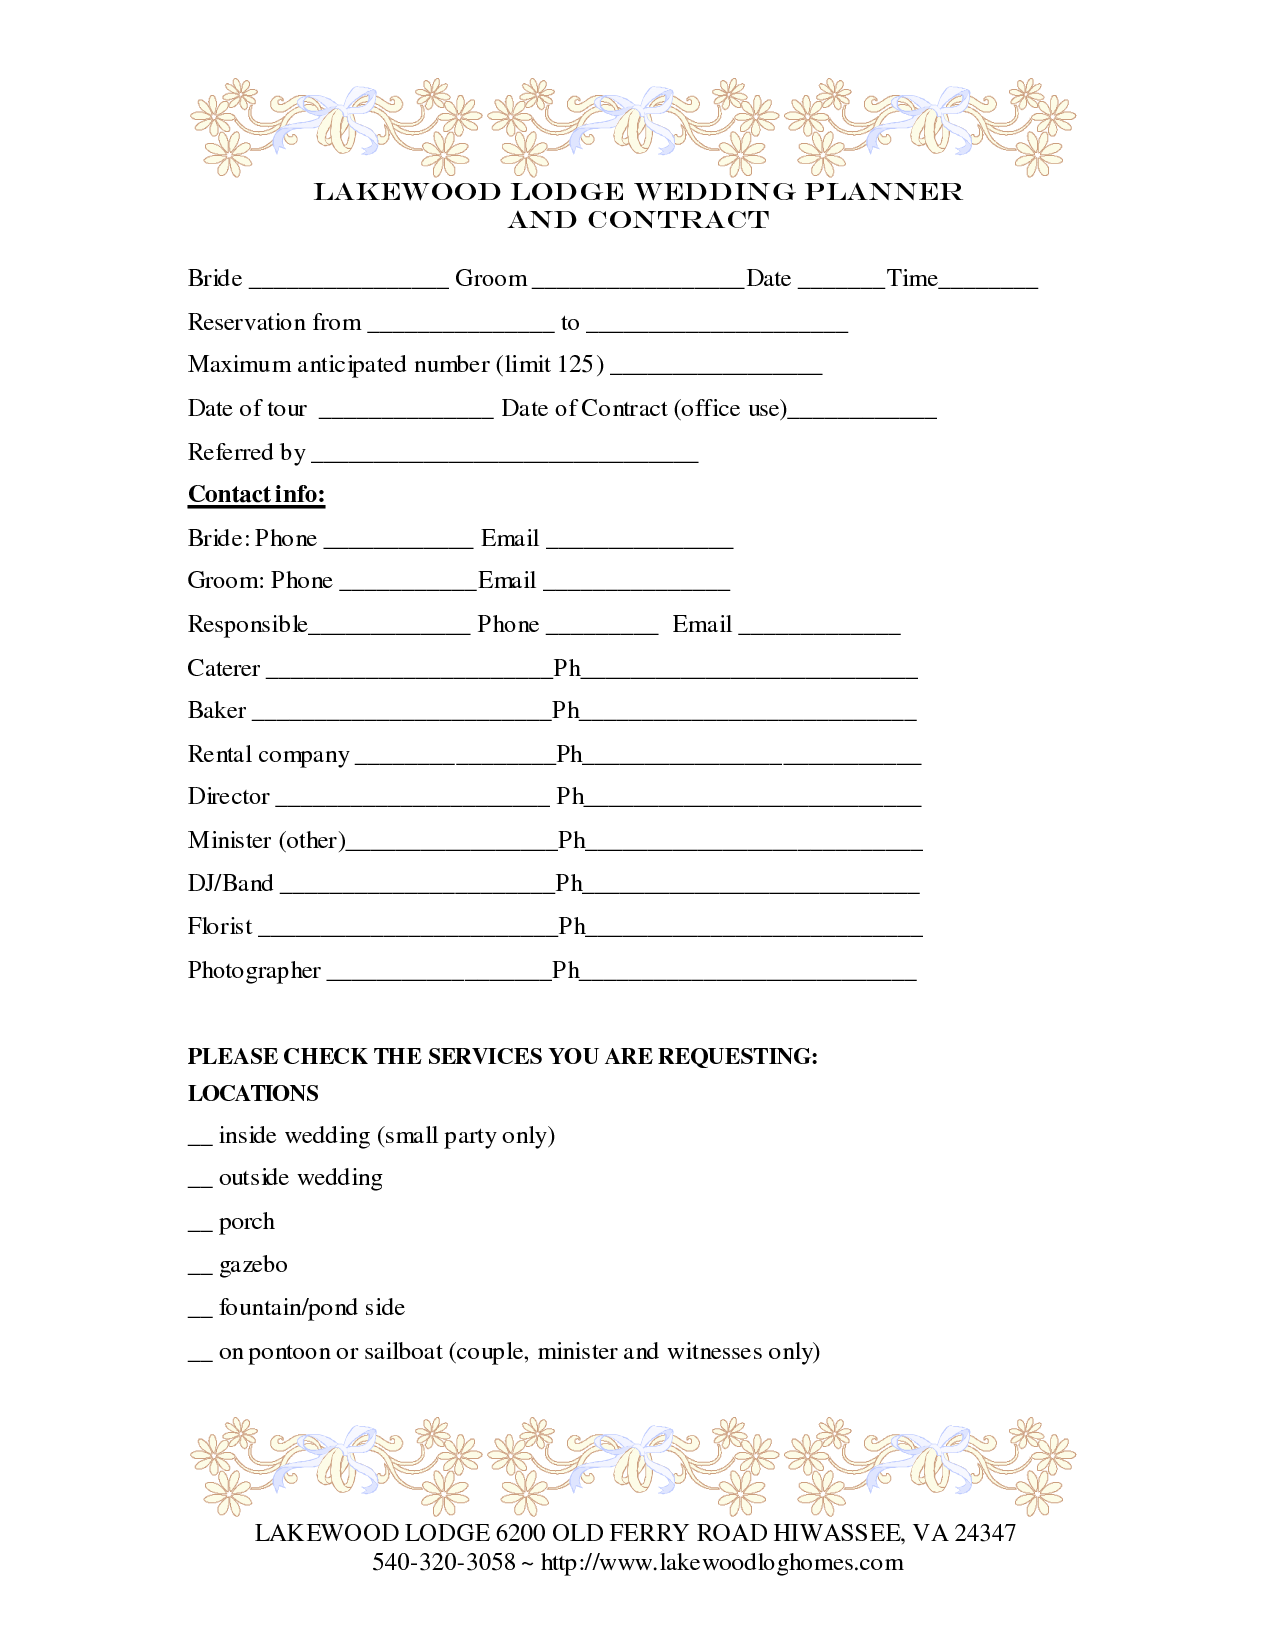 Wedding Planner Contract Template – Event Coordinator Contract Sample